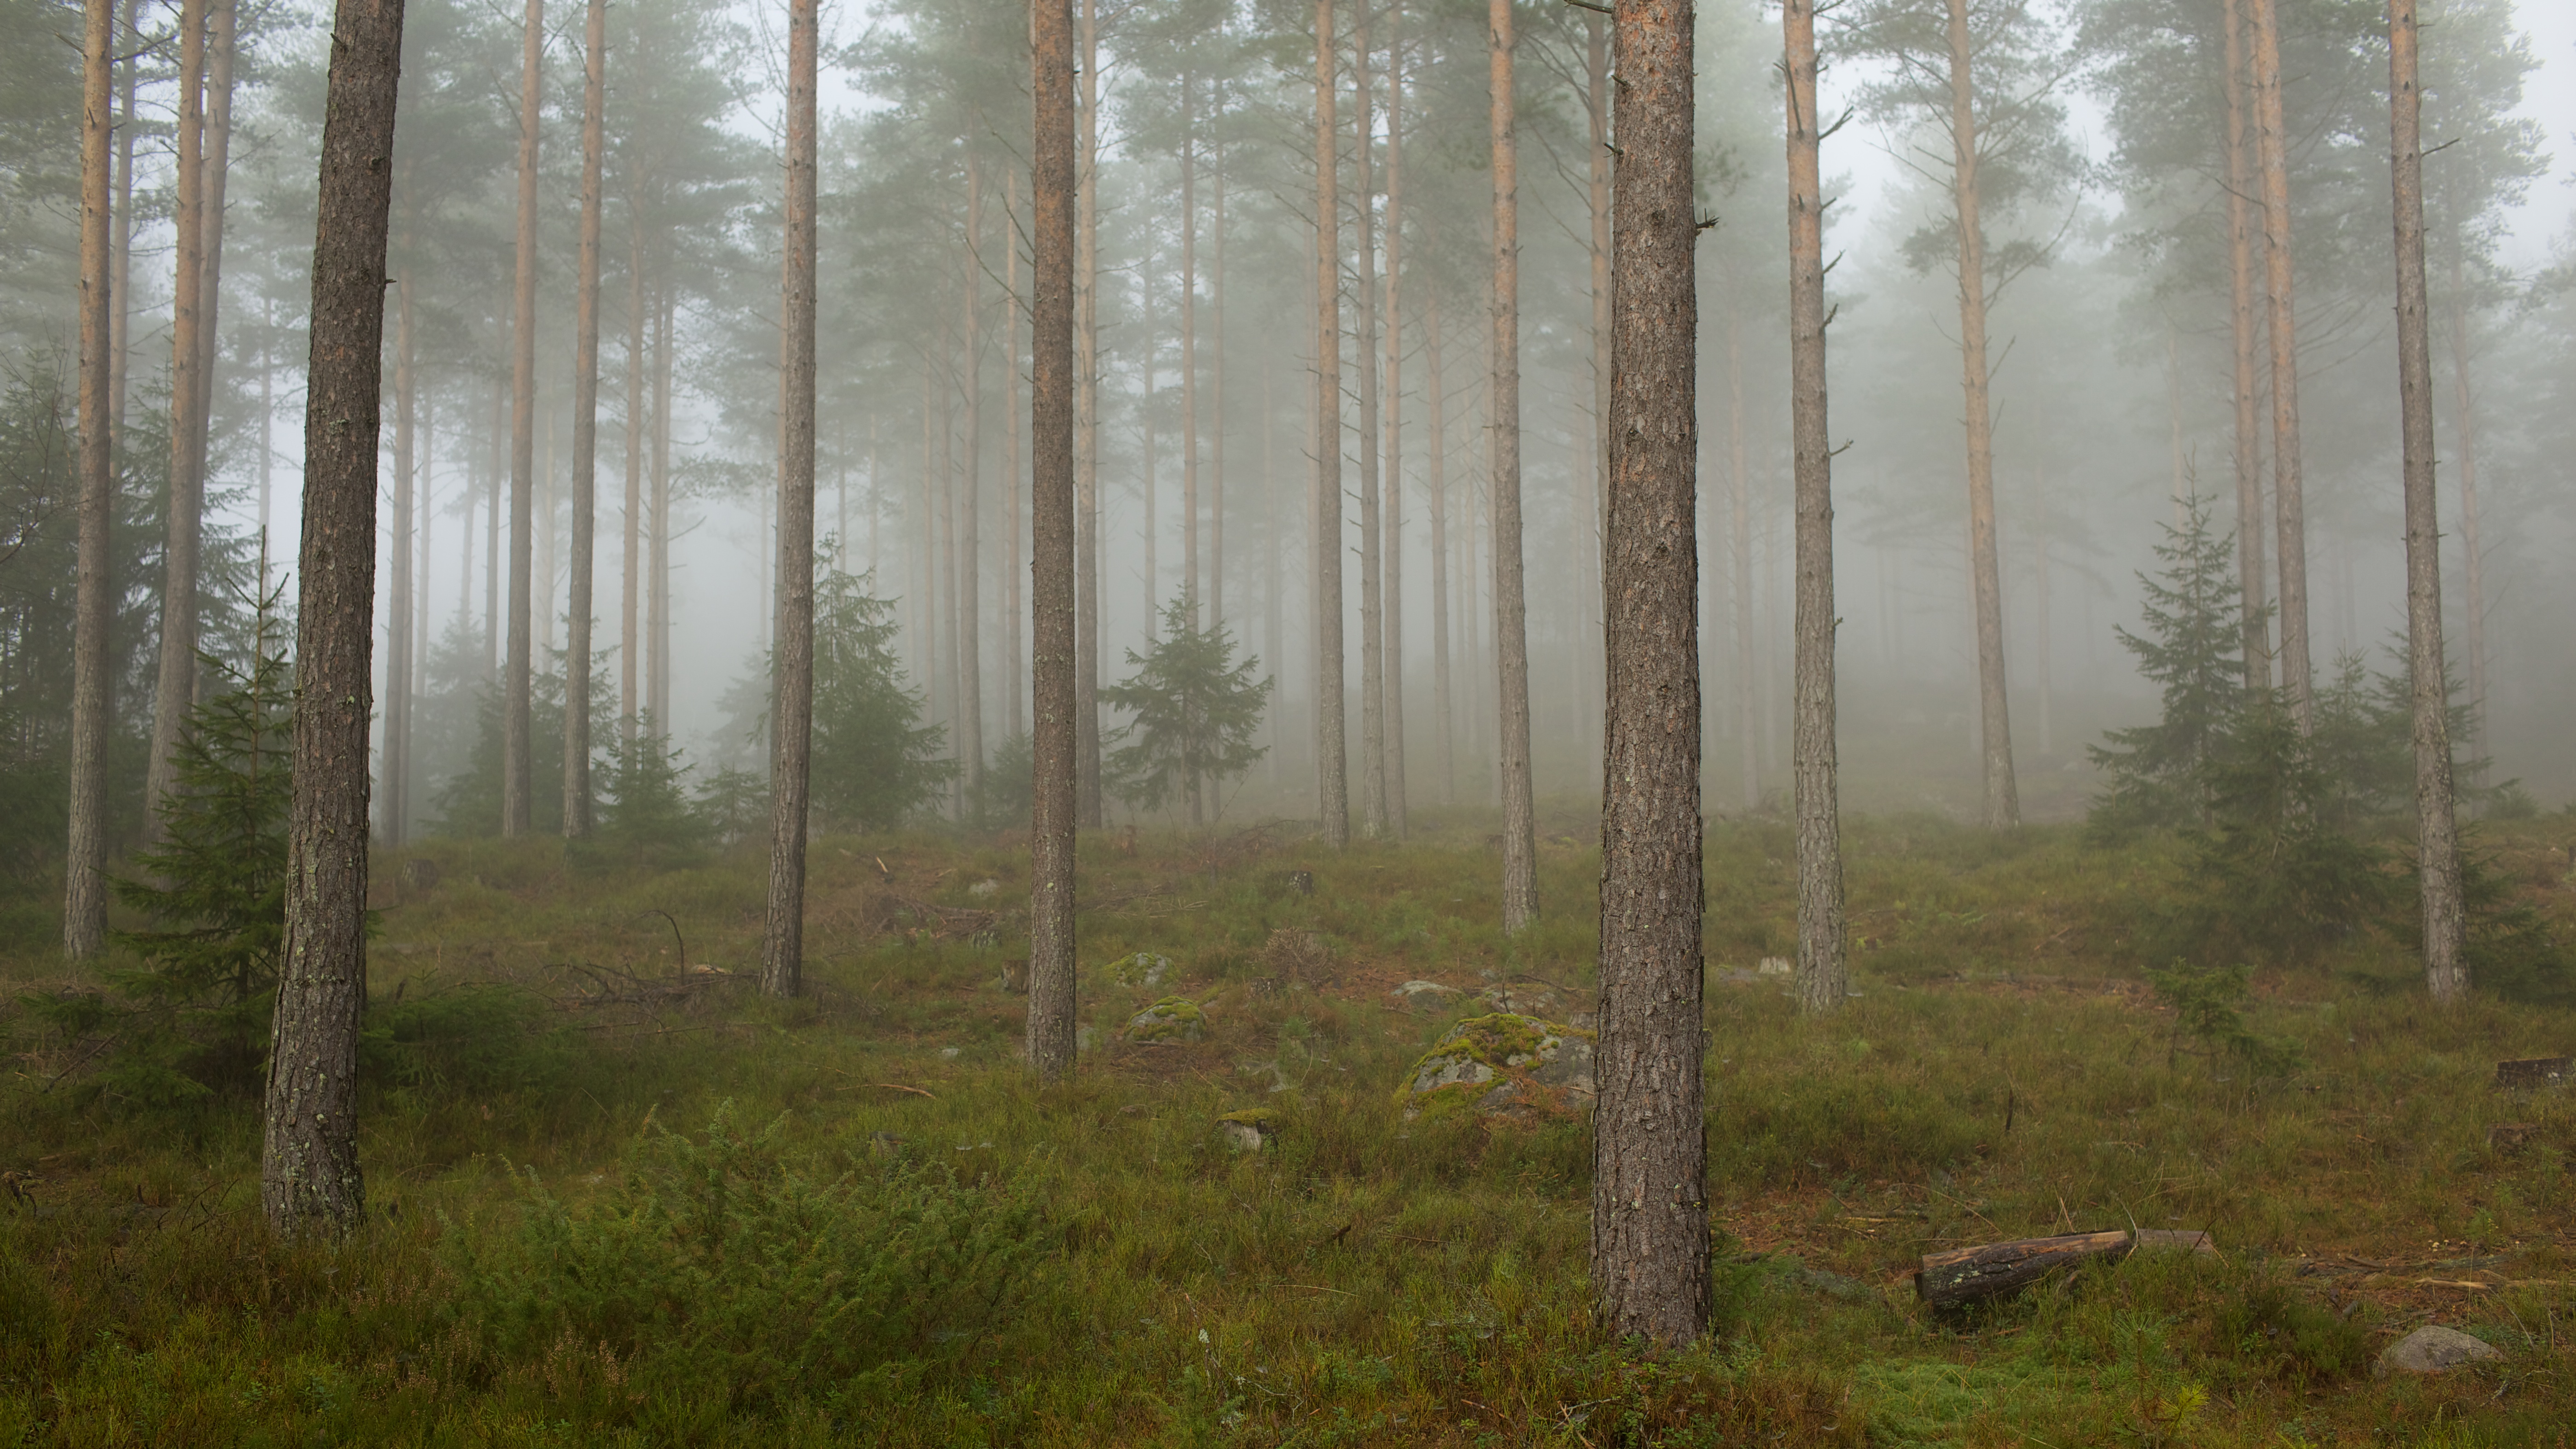 http://upload.wikimedia.org/wikipedia/commons/d/d8/Fog_in_a_forest,_Telemark_2.jpg